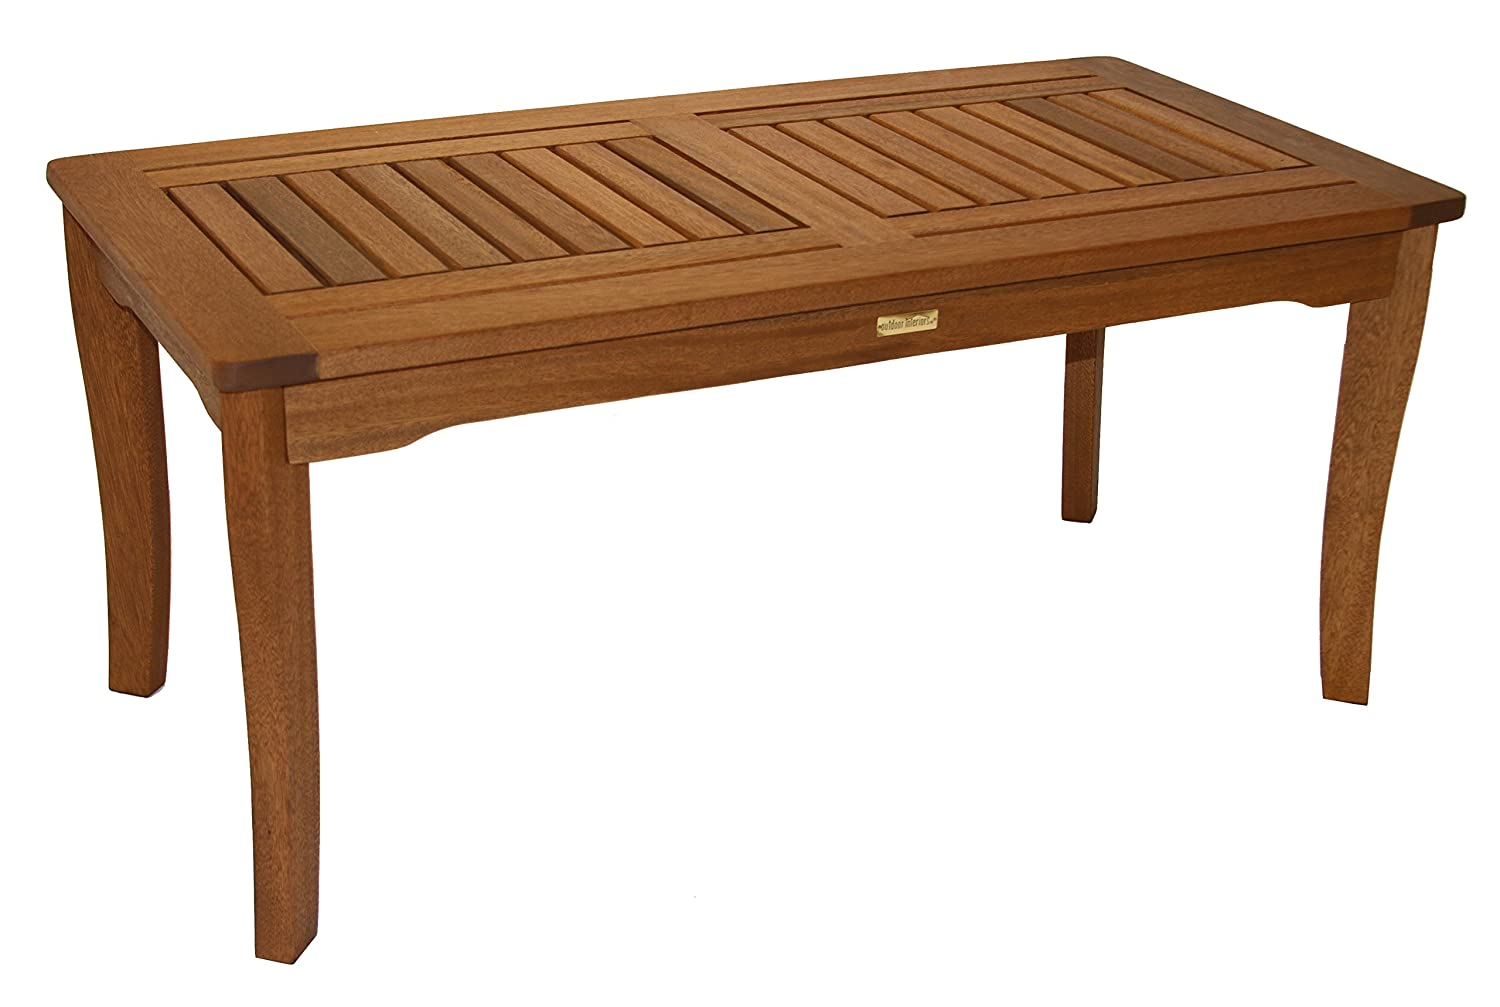 Retro Tiled Coffee Table Images Design Ideas